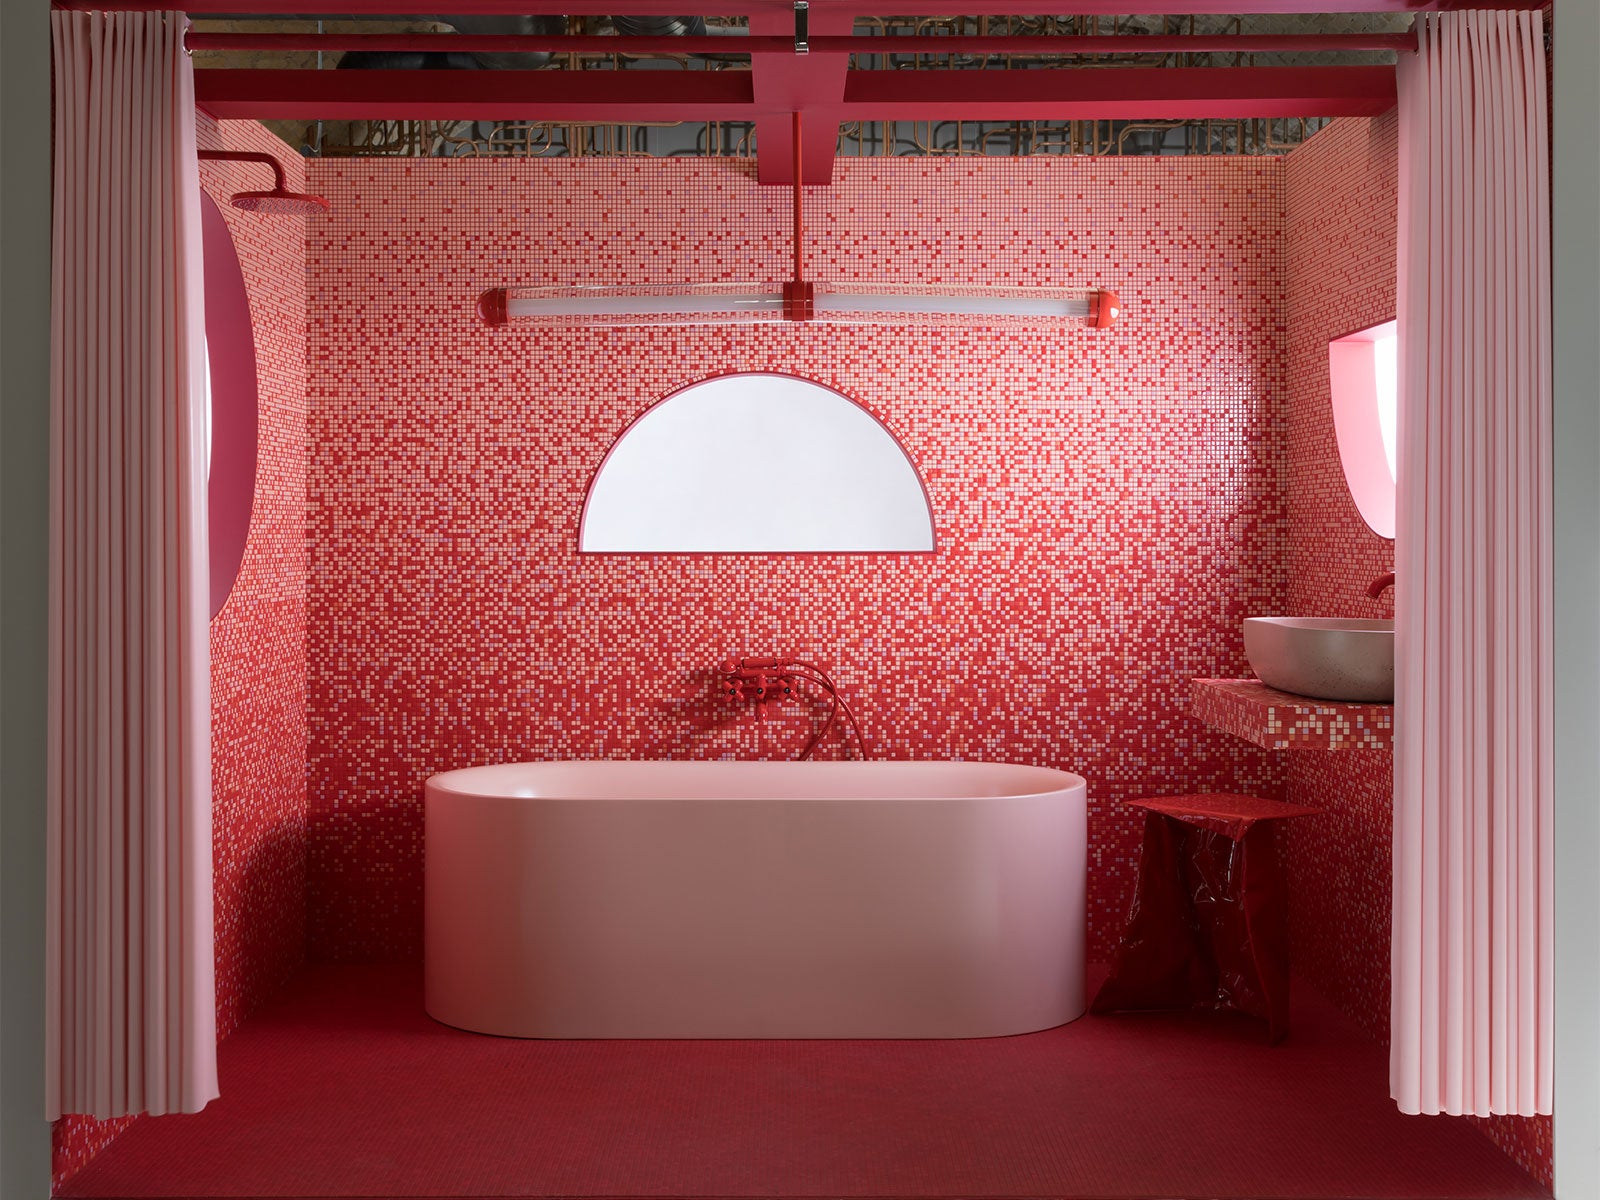 Bathroom installation for CP Hart, featuring Bisazza mosaic tiles, designed by 2LG Studio(1)